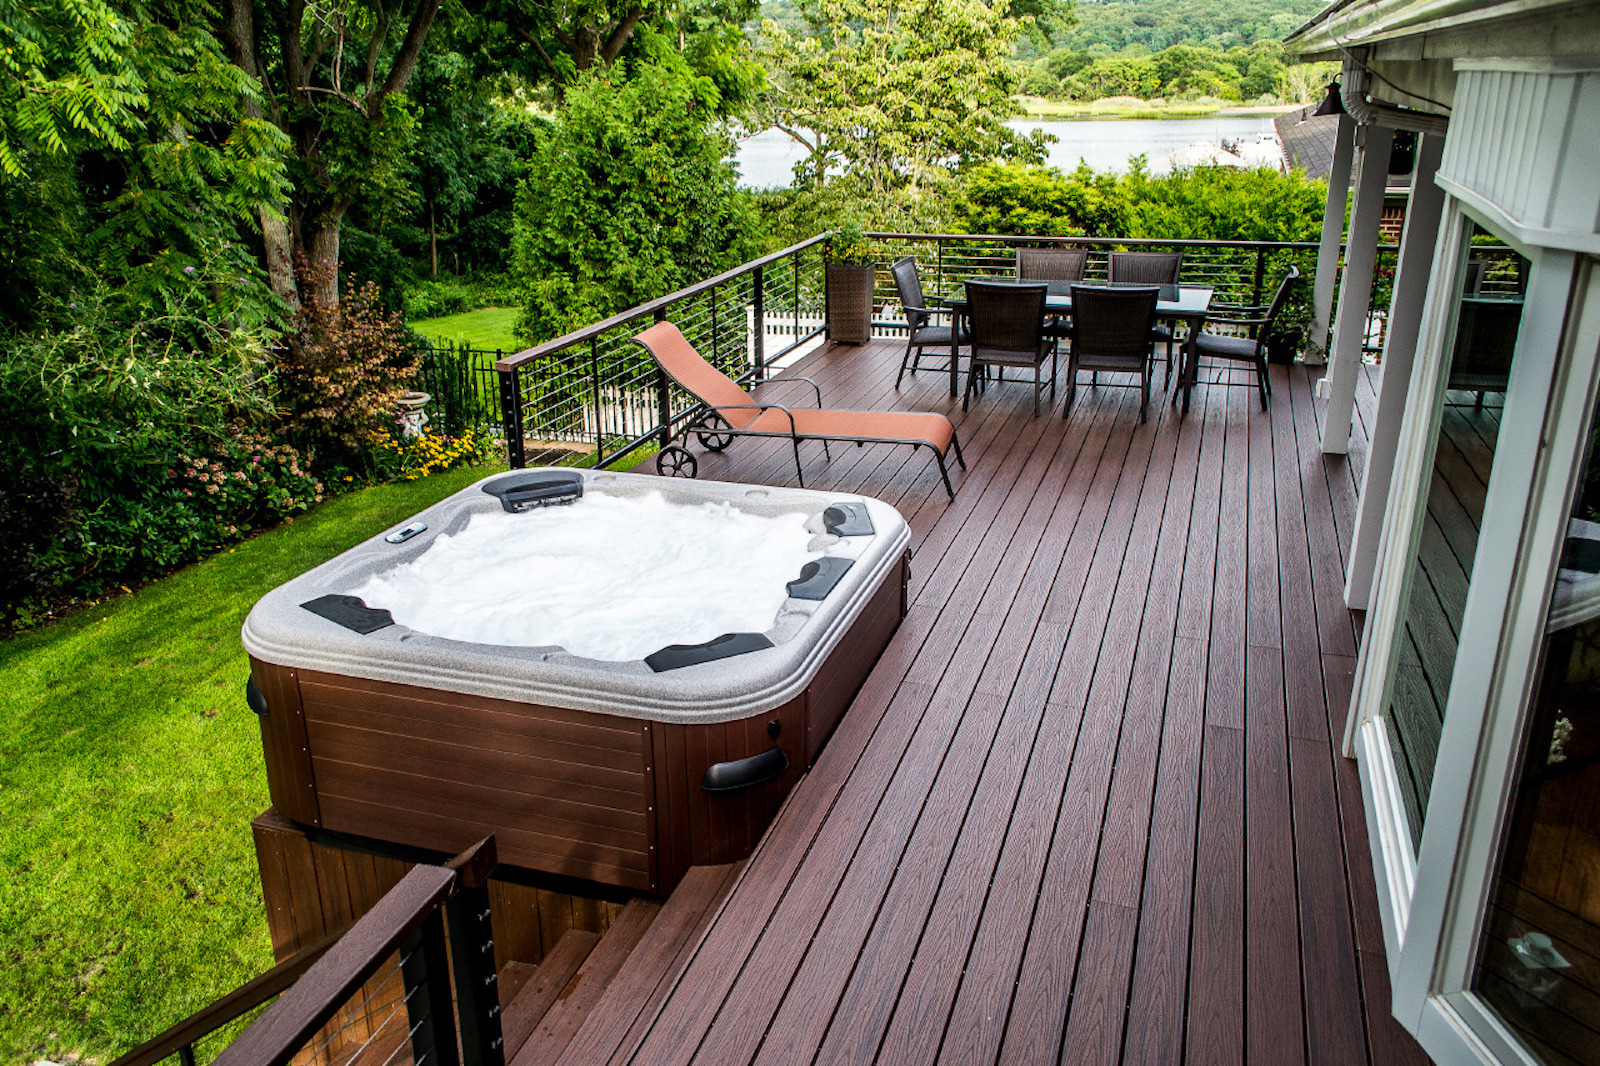 Spa And Deck Installation Decks In Cost To Install Wiring For Hot Tub